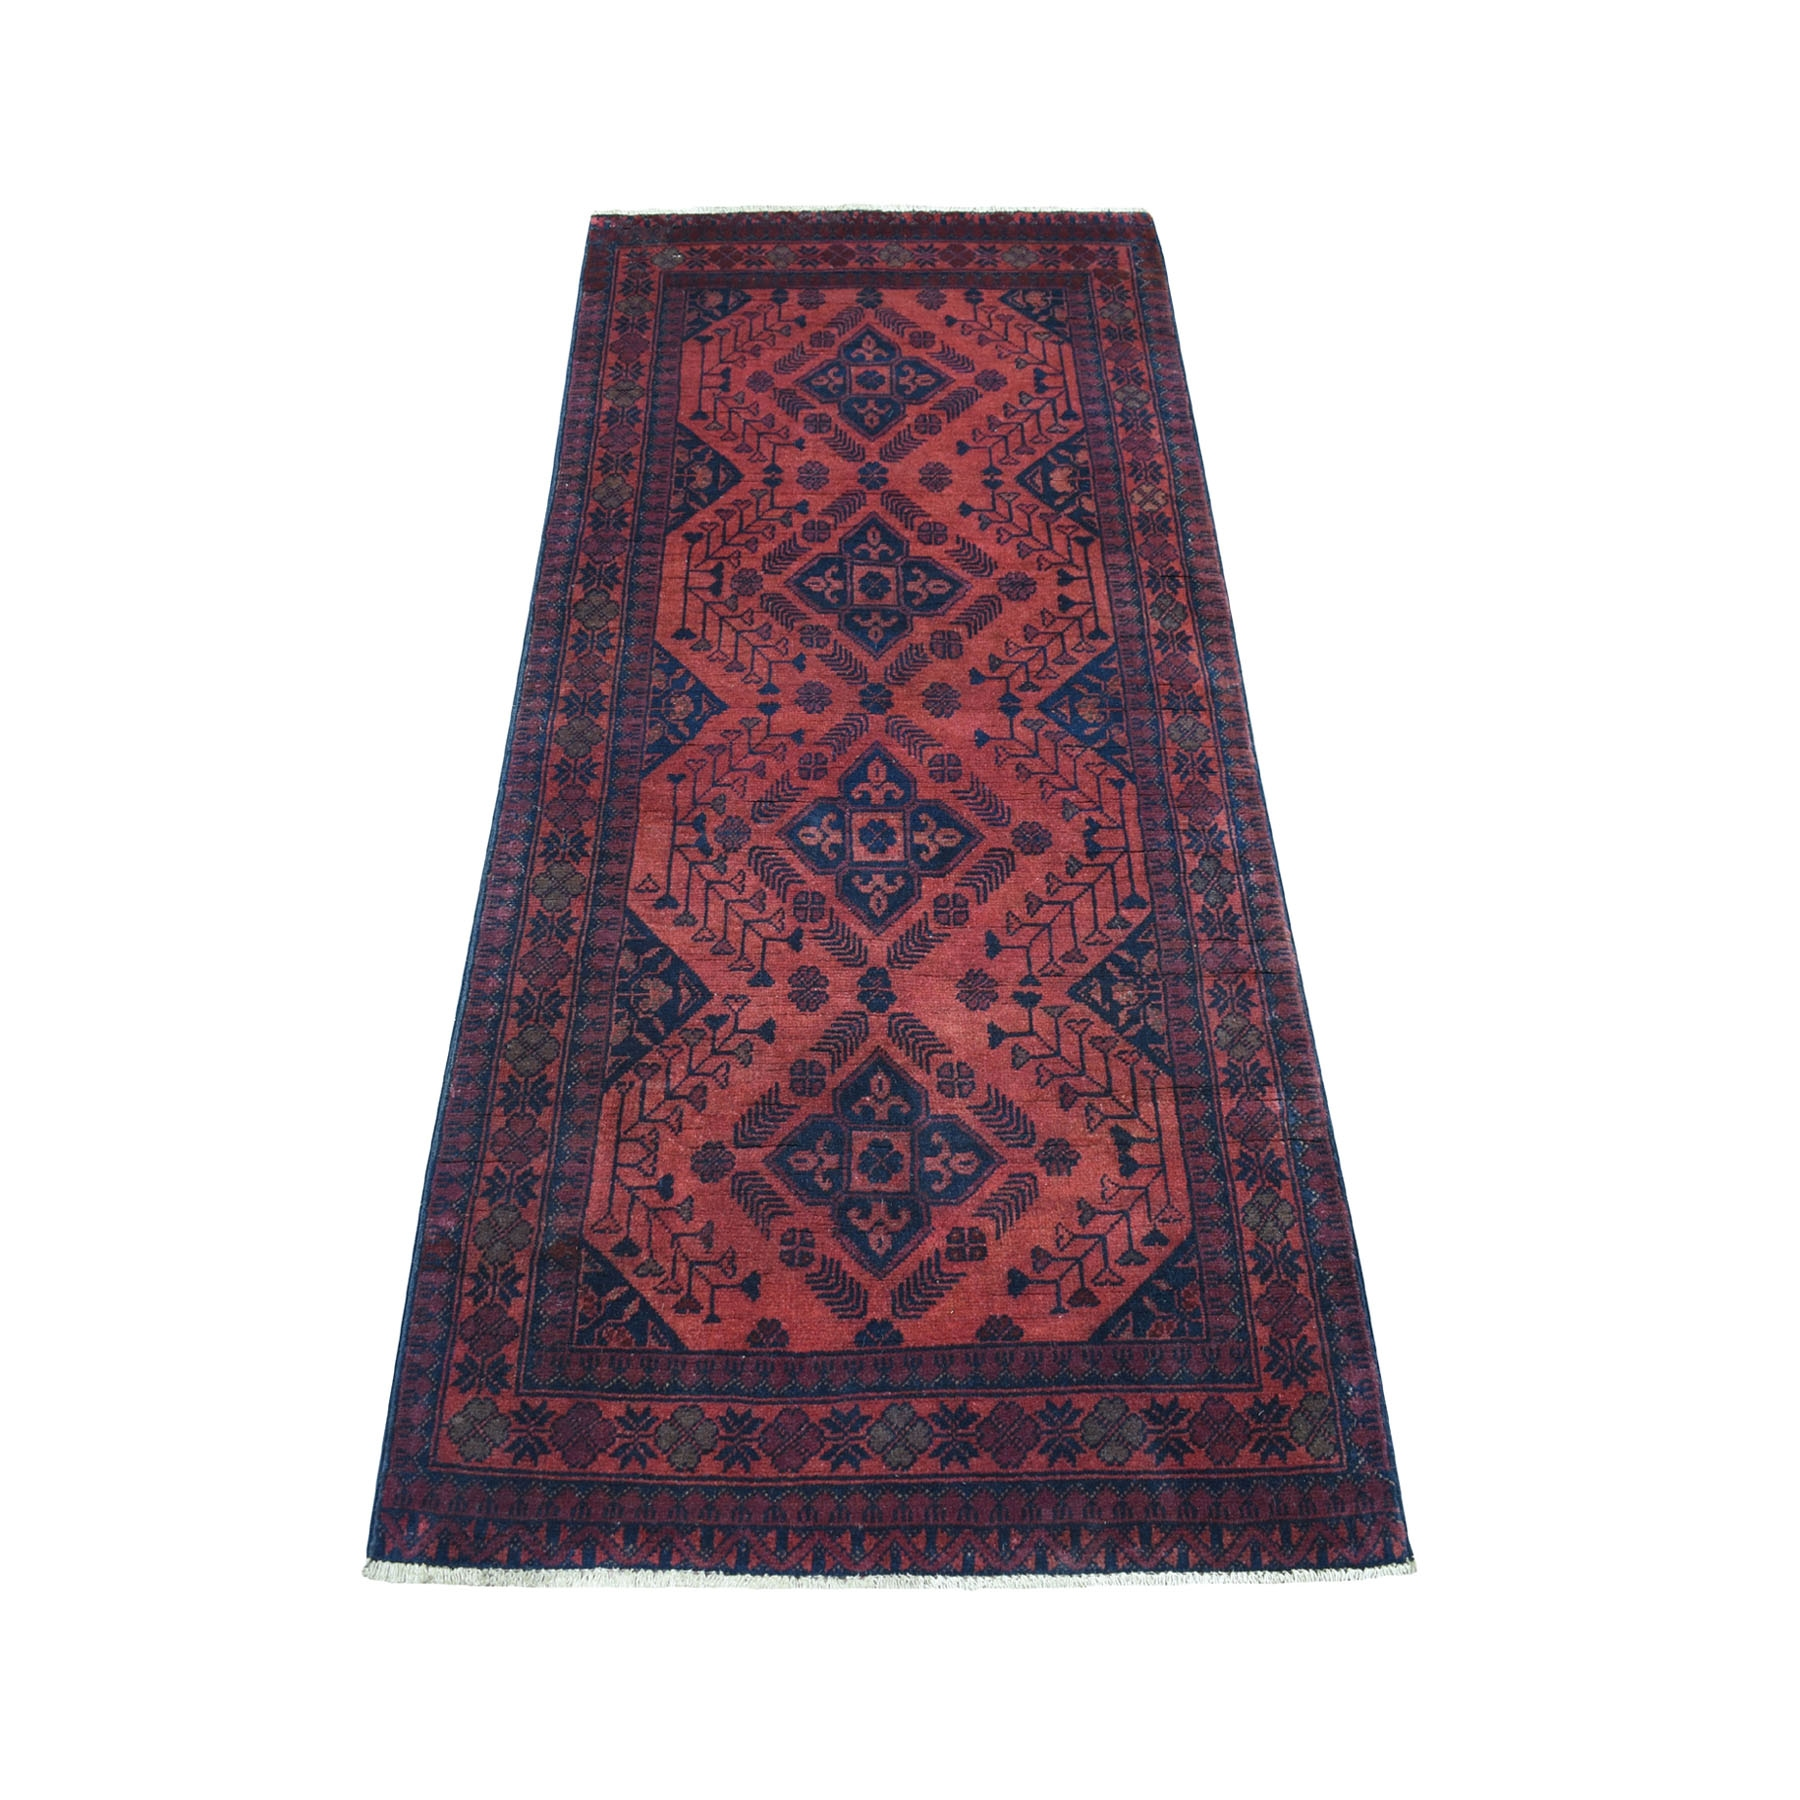 "2'7""x6'1"" Deep and Saturated Red Geometric Afghan Andkhoy Runner Pure Wool Hand Knotted Oriental Rug 53908"